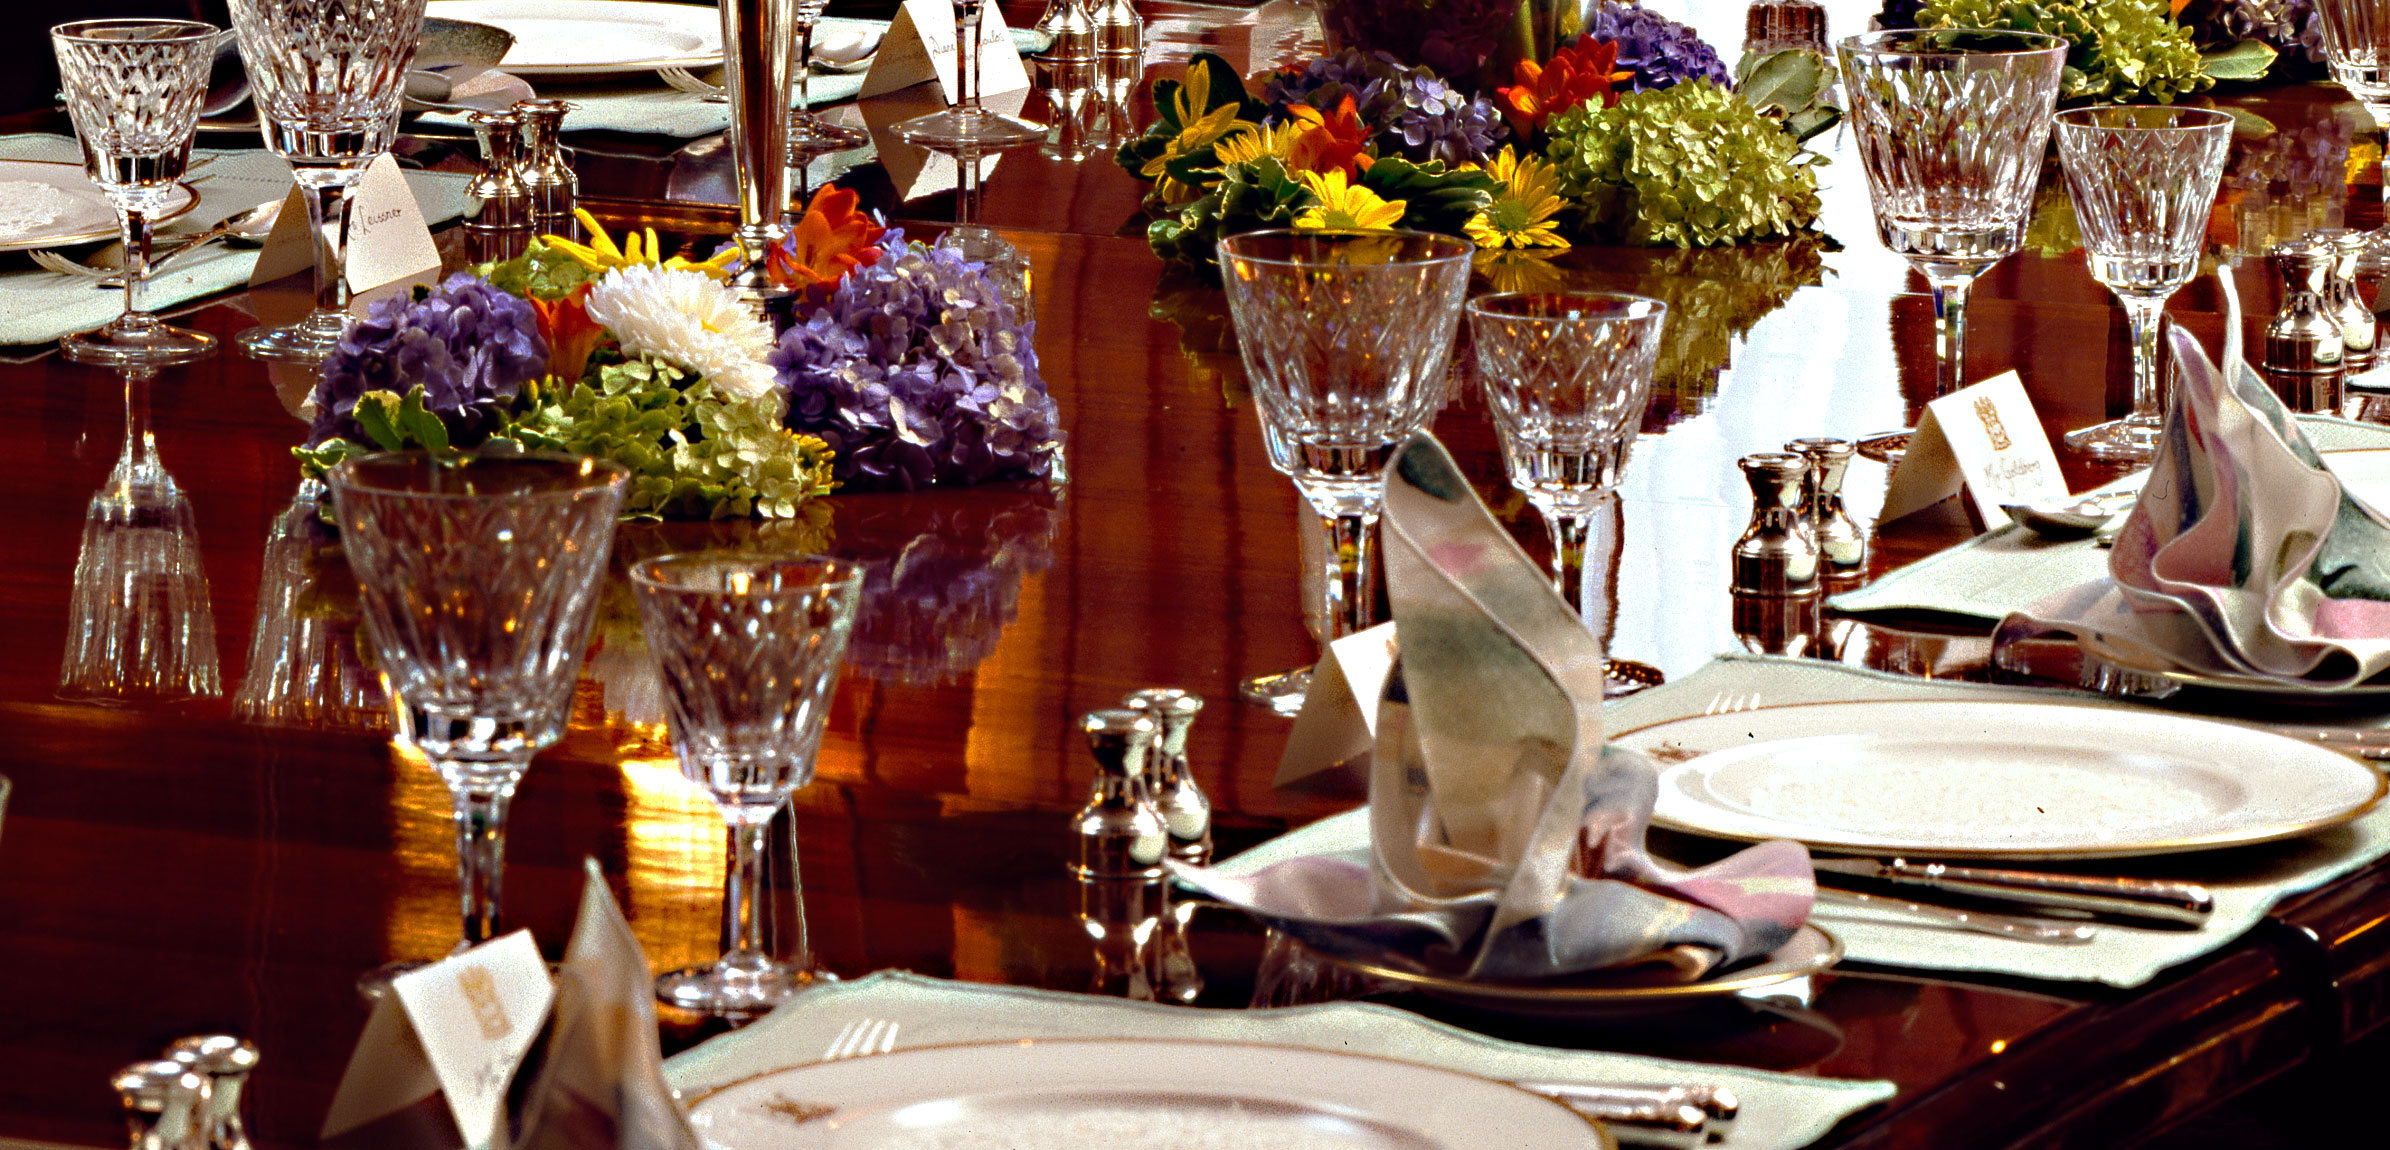 Table Setting Ideas How To Set A Formal Dinner Table Photos .